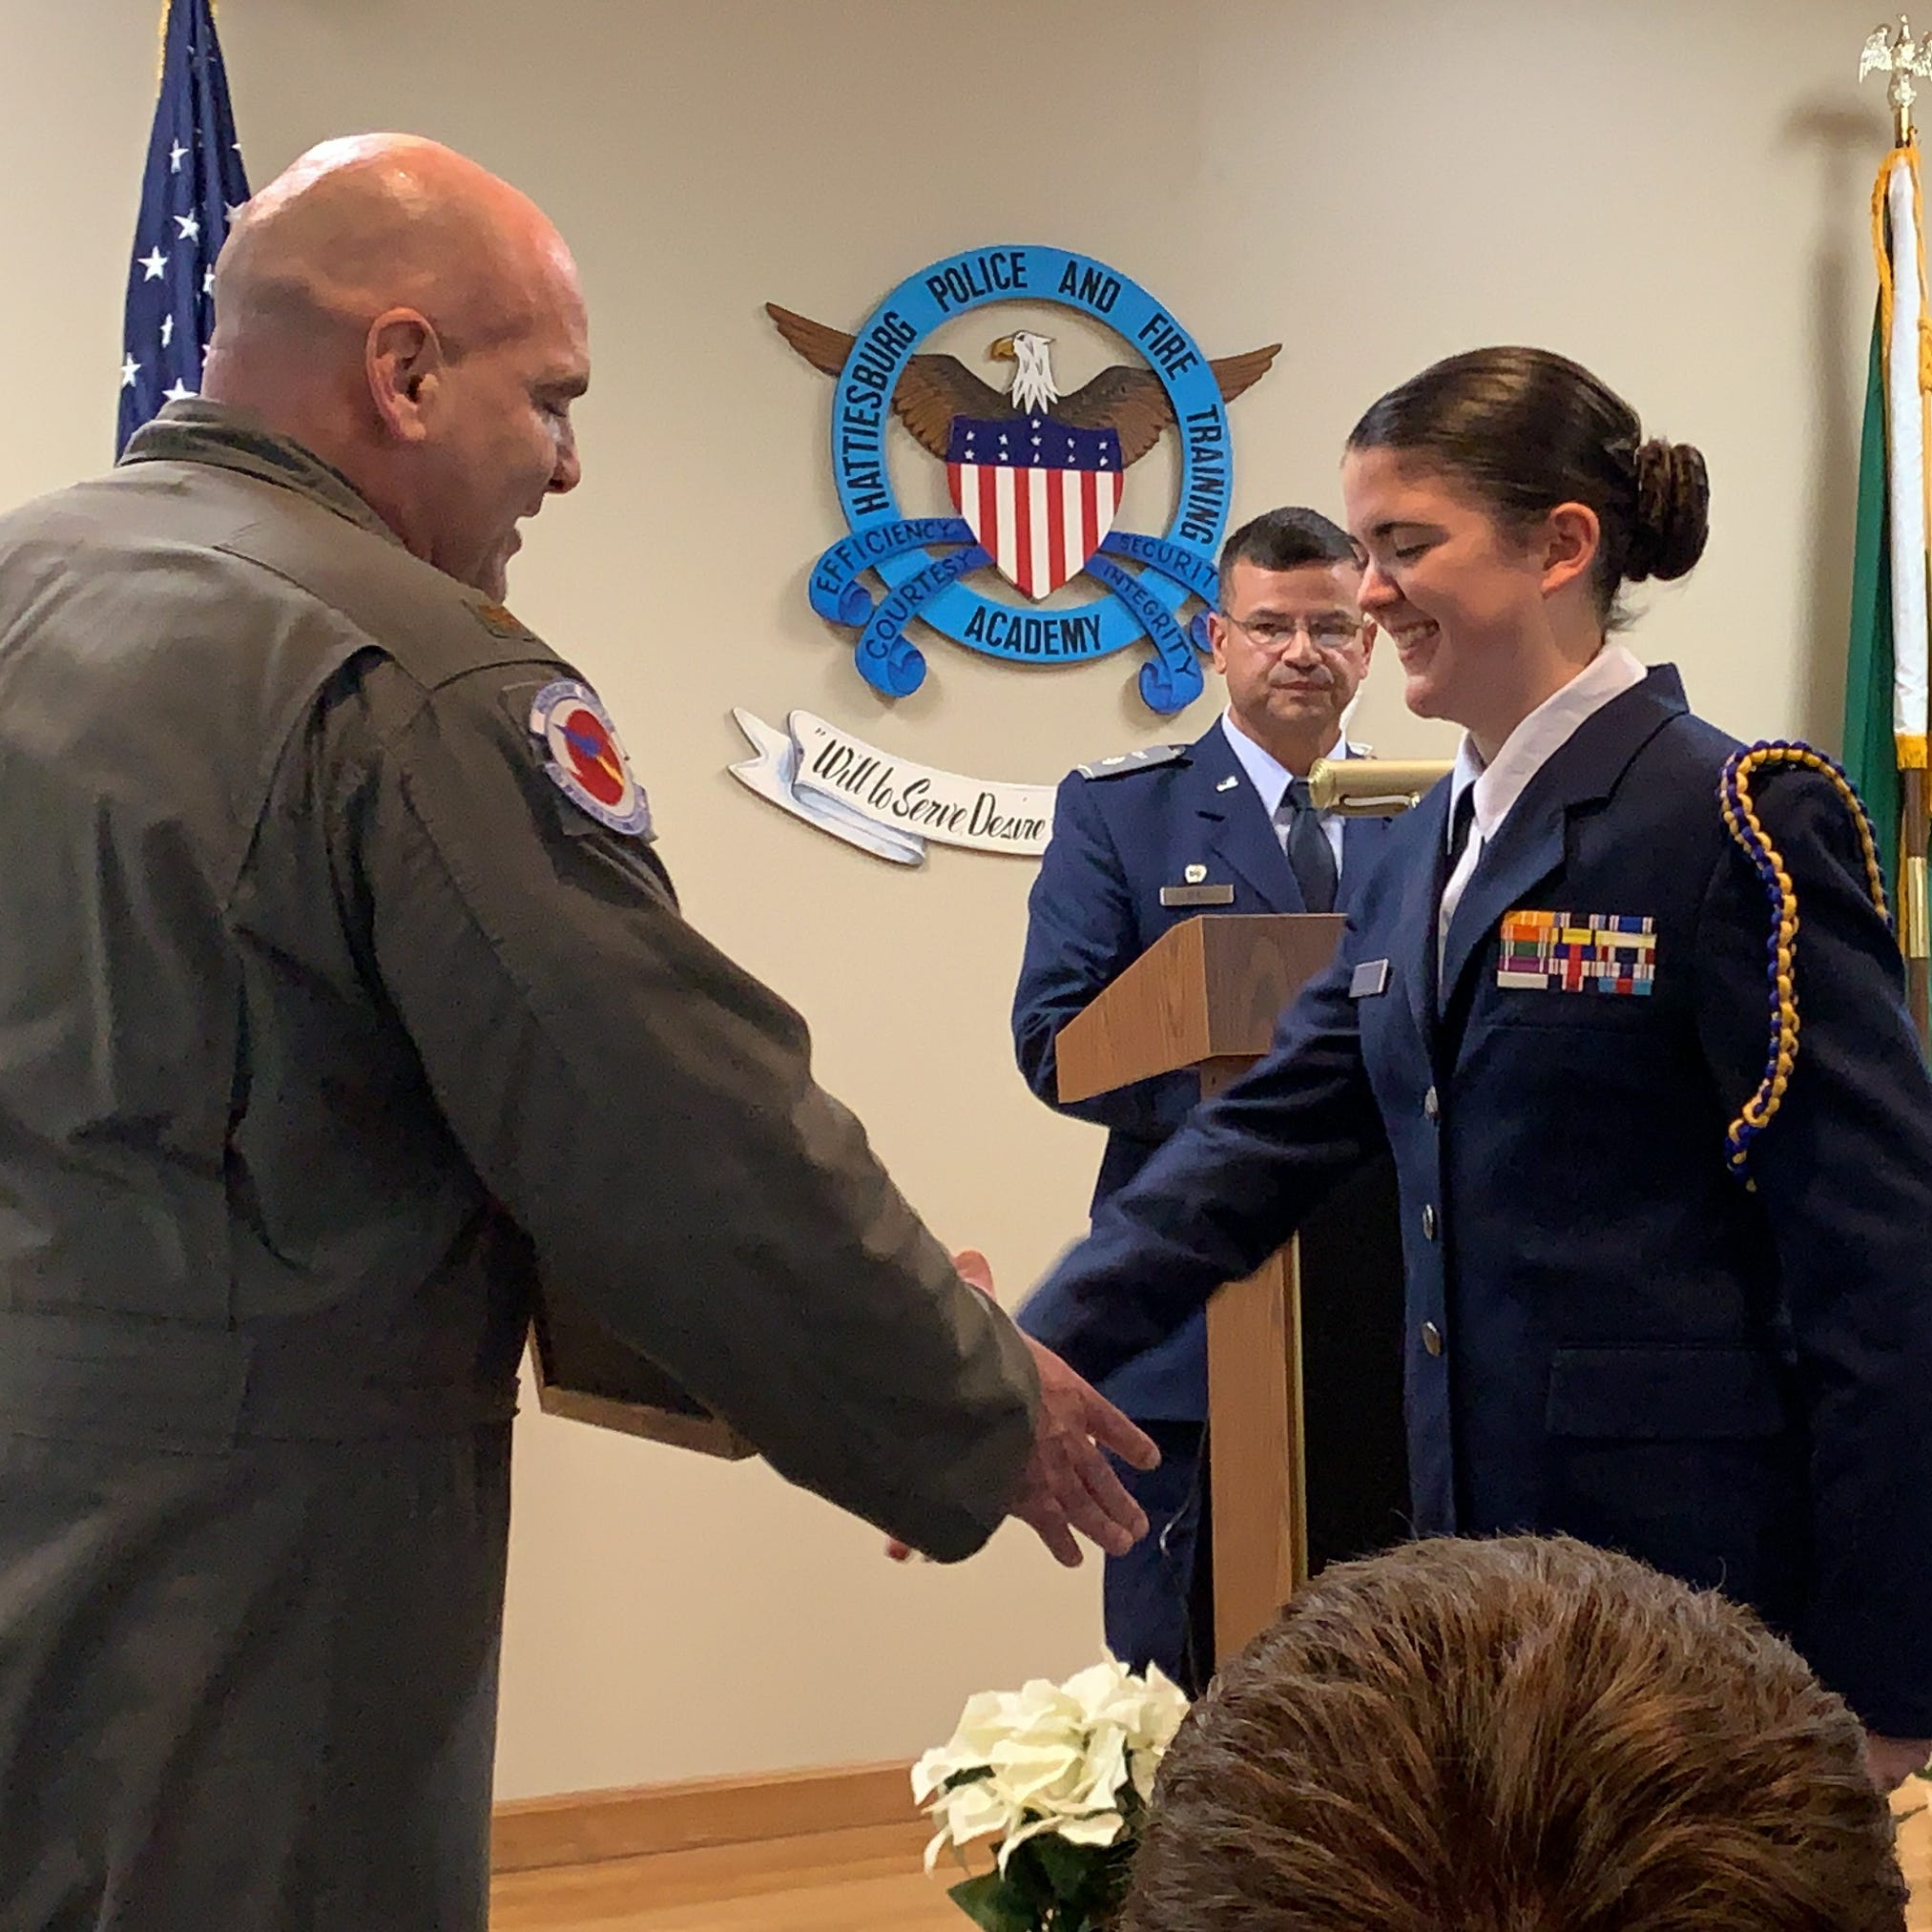 Teen becomes first Pine Belt female to receive Civil Air Patrol award